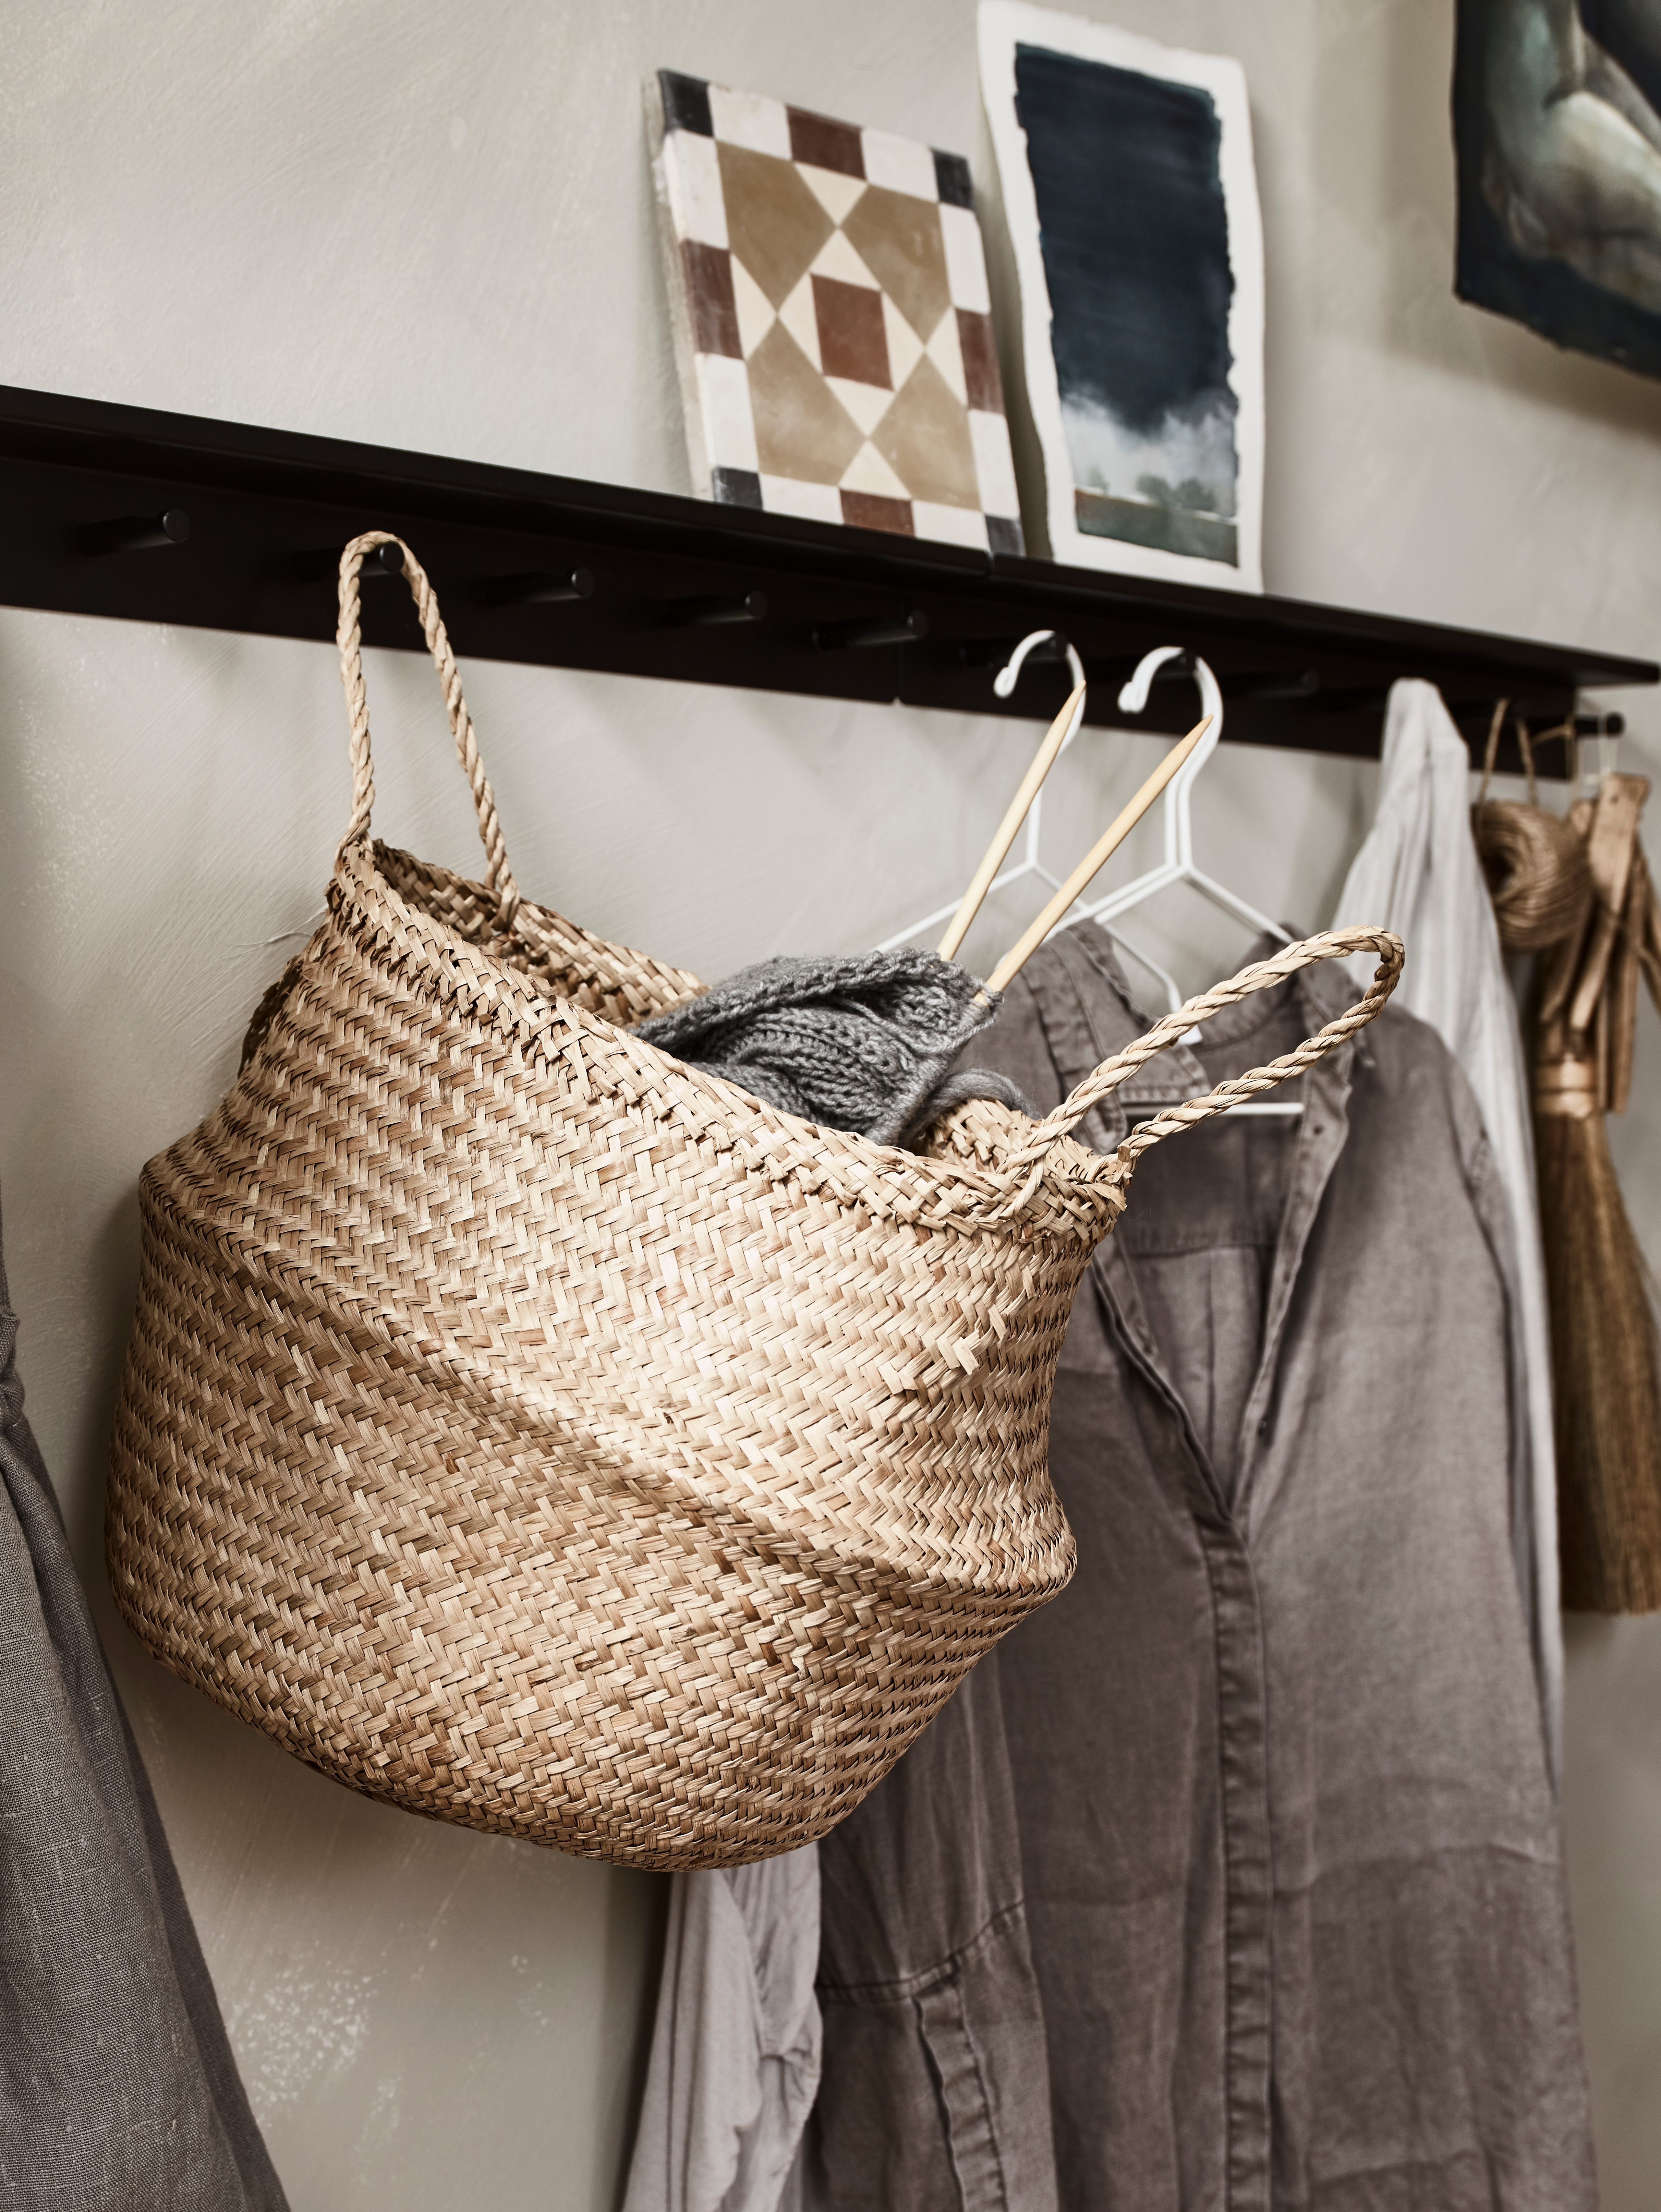 A woven seagrass FLÅDIS basket holds knitting needles and hangs by a handle on a wall rail, beside clothes on hangers.